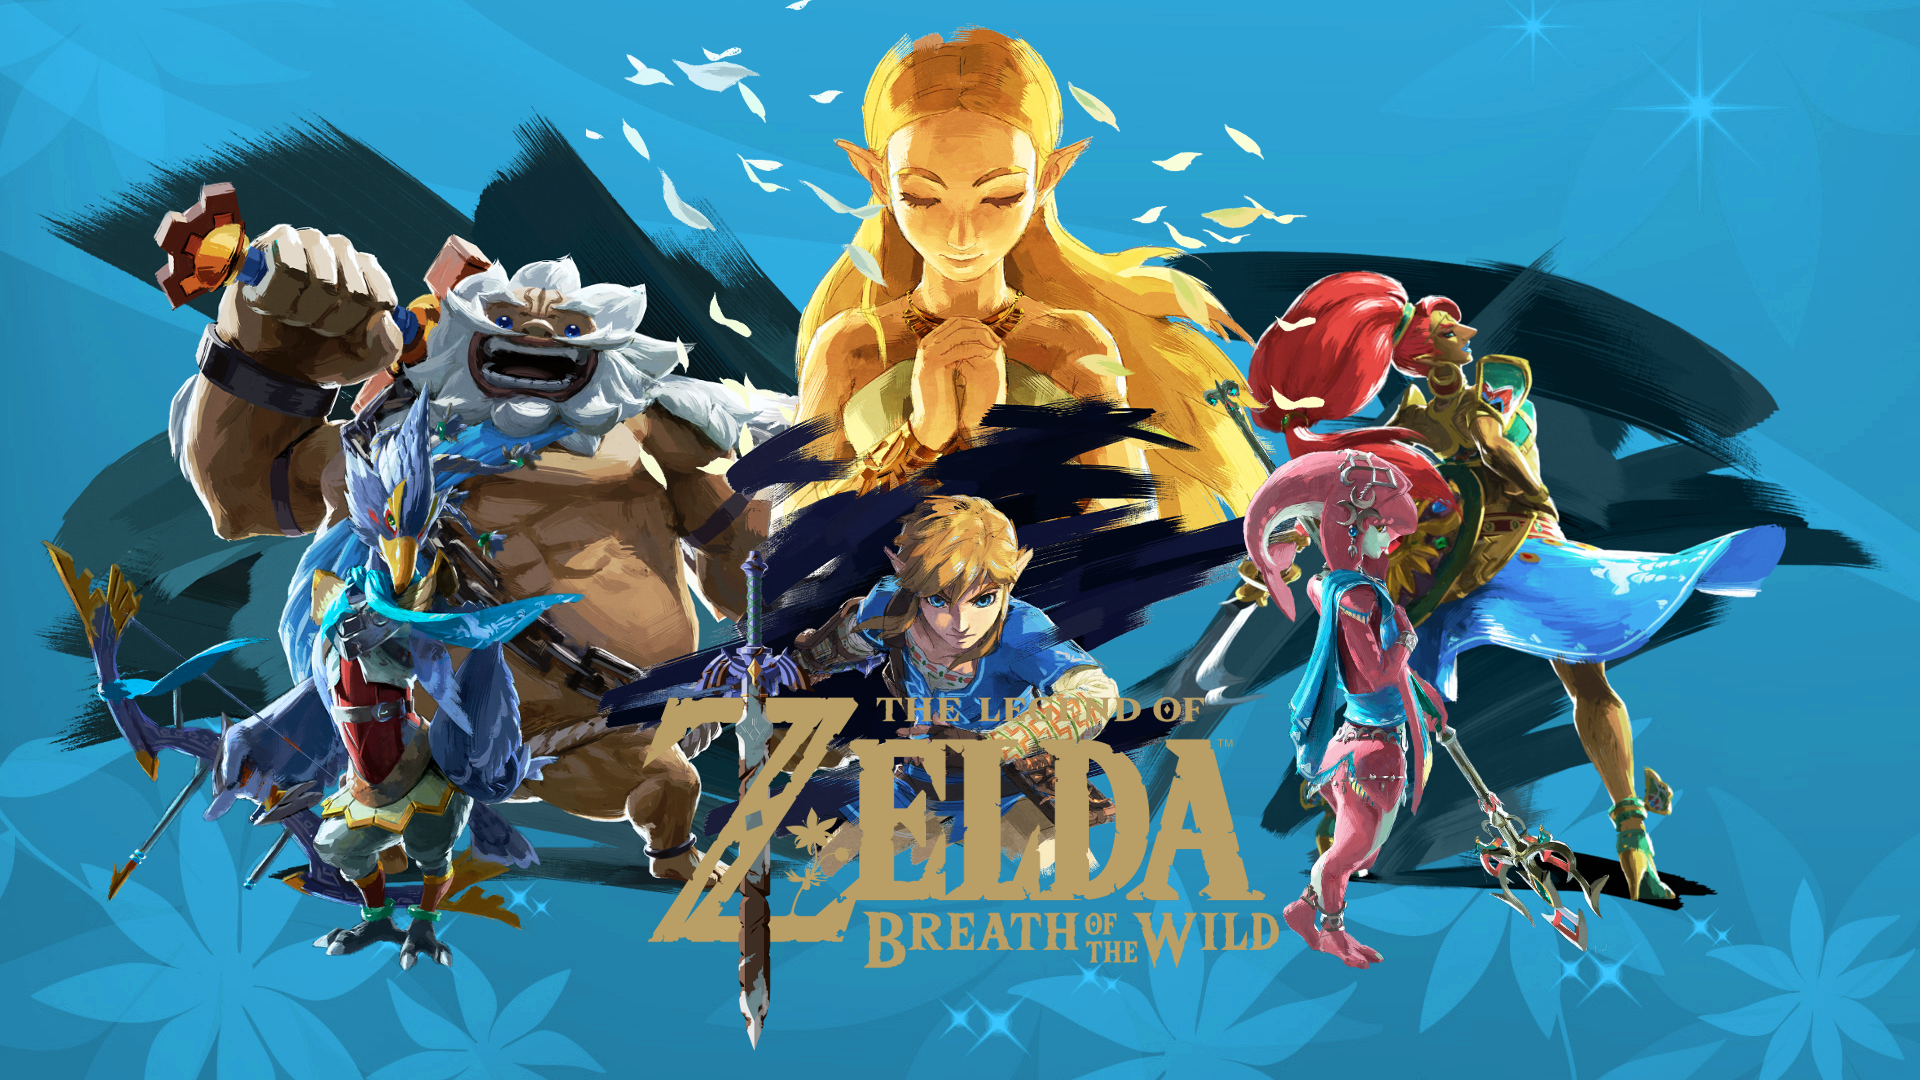 The Legend Of Zelda Breath Of The Wild Hd Wallpaper Background